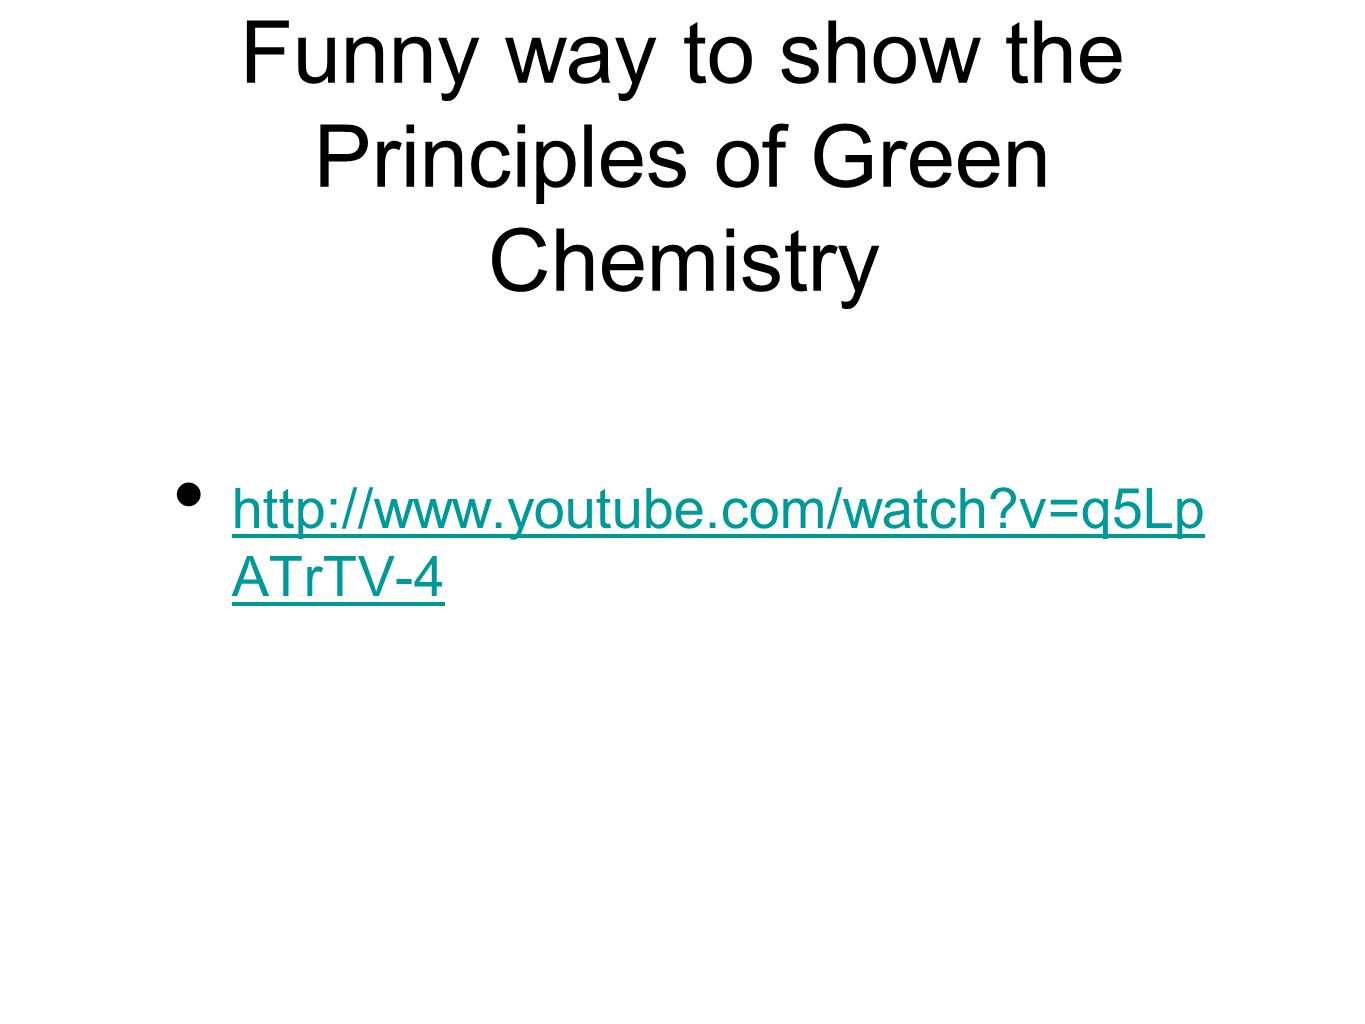 Funny way to show the Principles of Green Chemistry